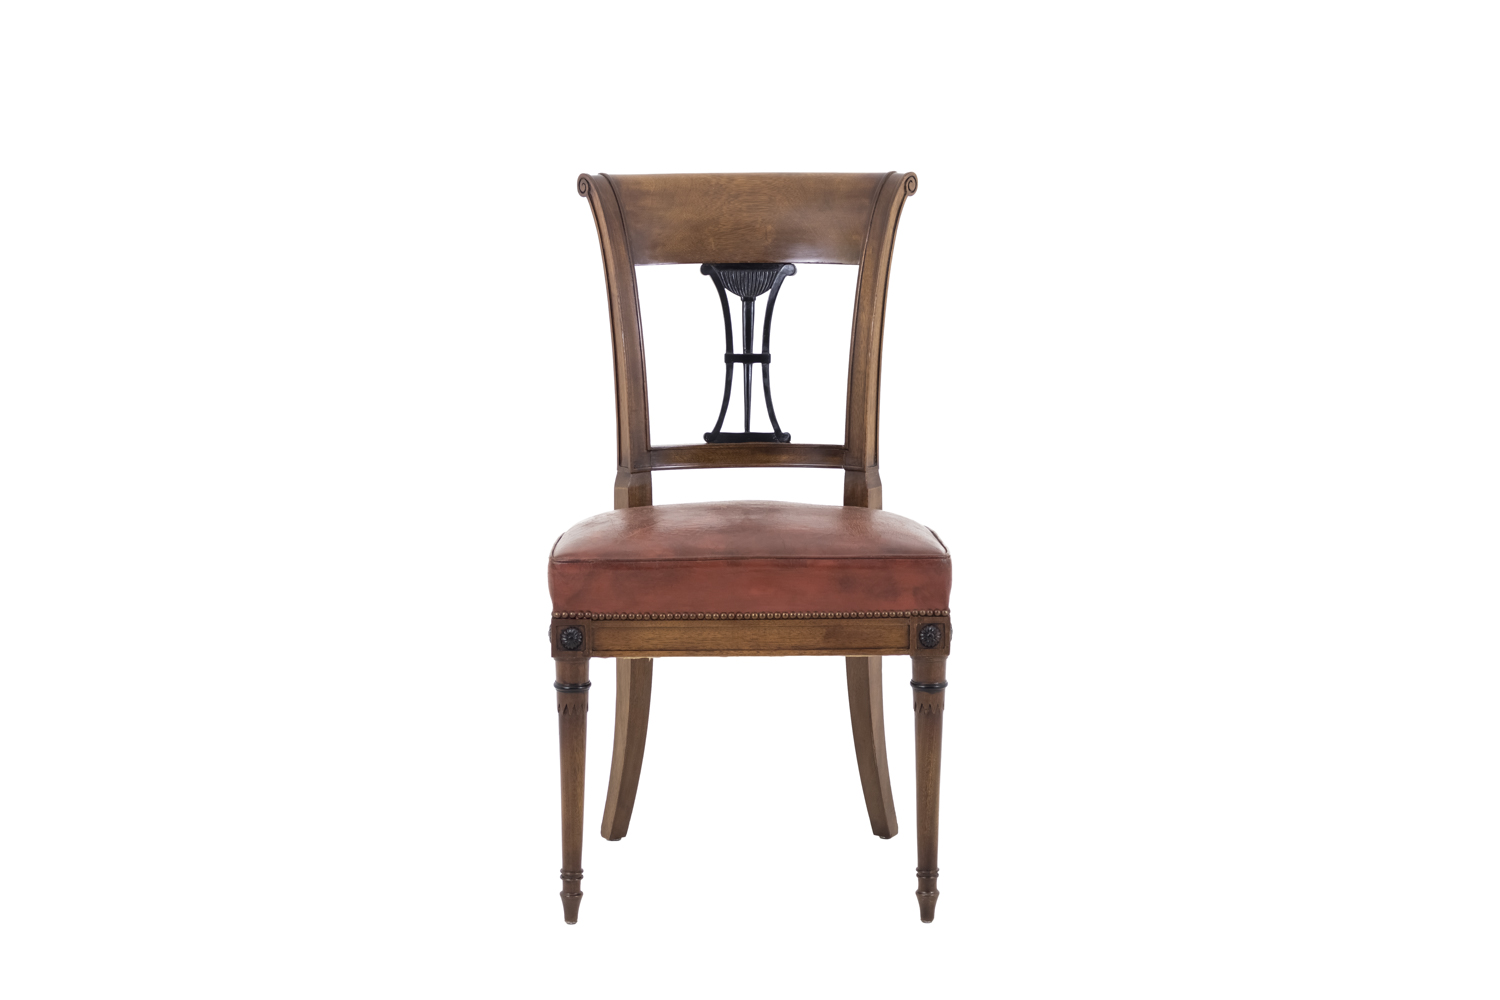 Phenomenal Set Of 6 Directoire Style Chairs In Mahogany Early 20Th Century Pabps2019 Chair Design Images Pabps2019Com